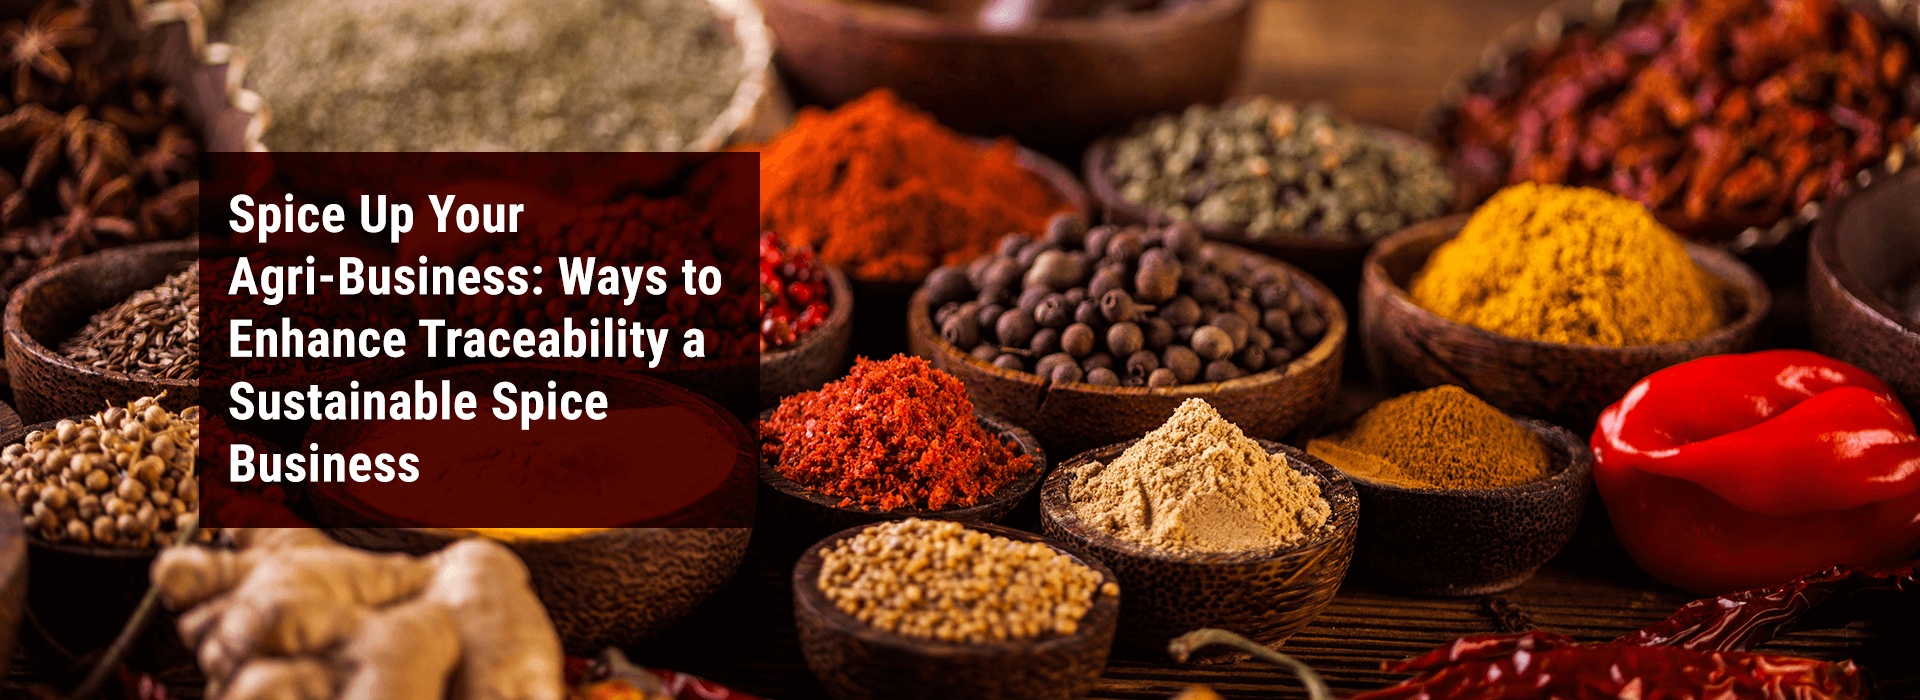 Banner Image: Spice Up your Agri-Business: Ways to Enhance Traceability a Sustainable Spice Business